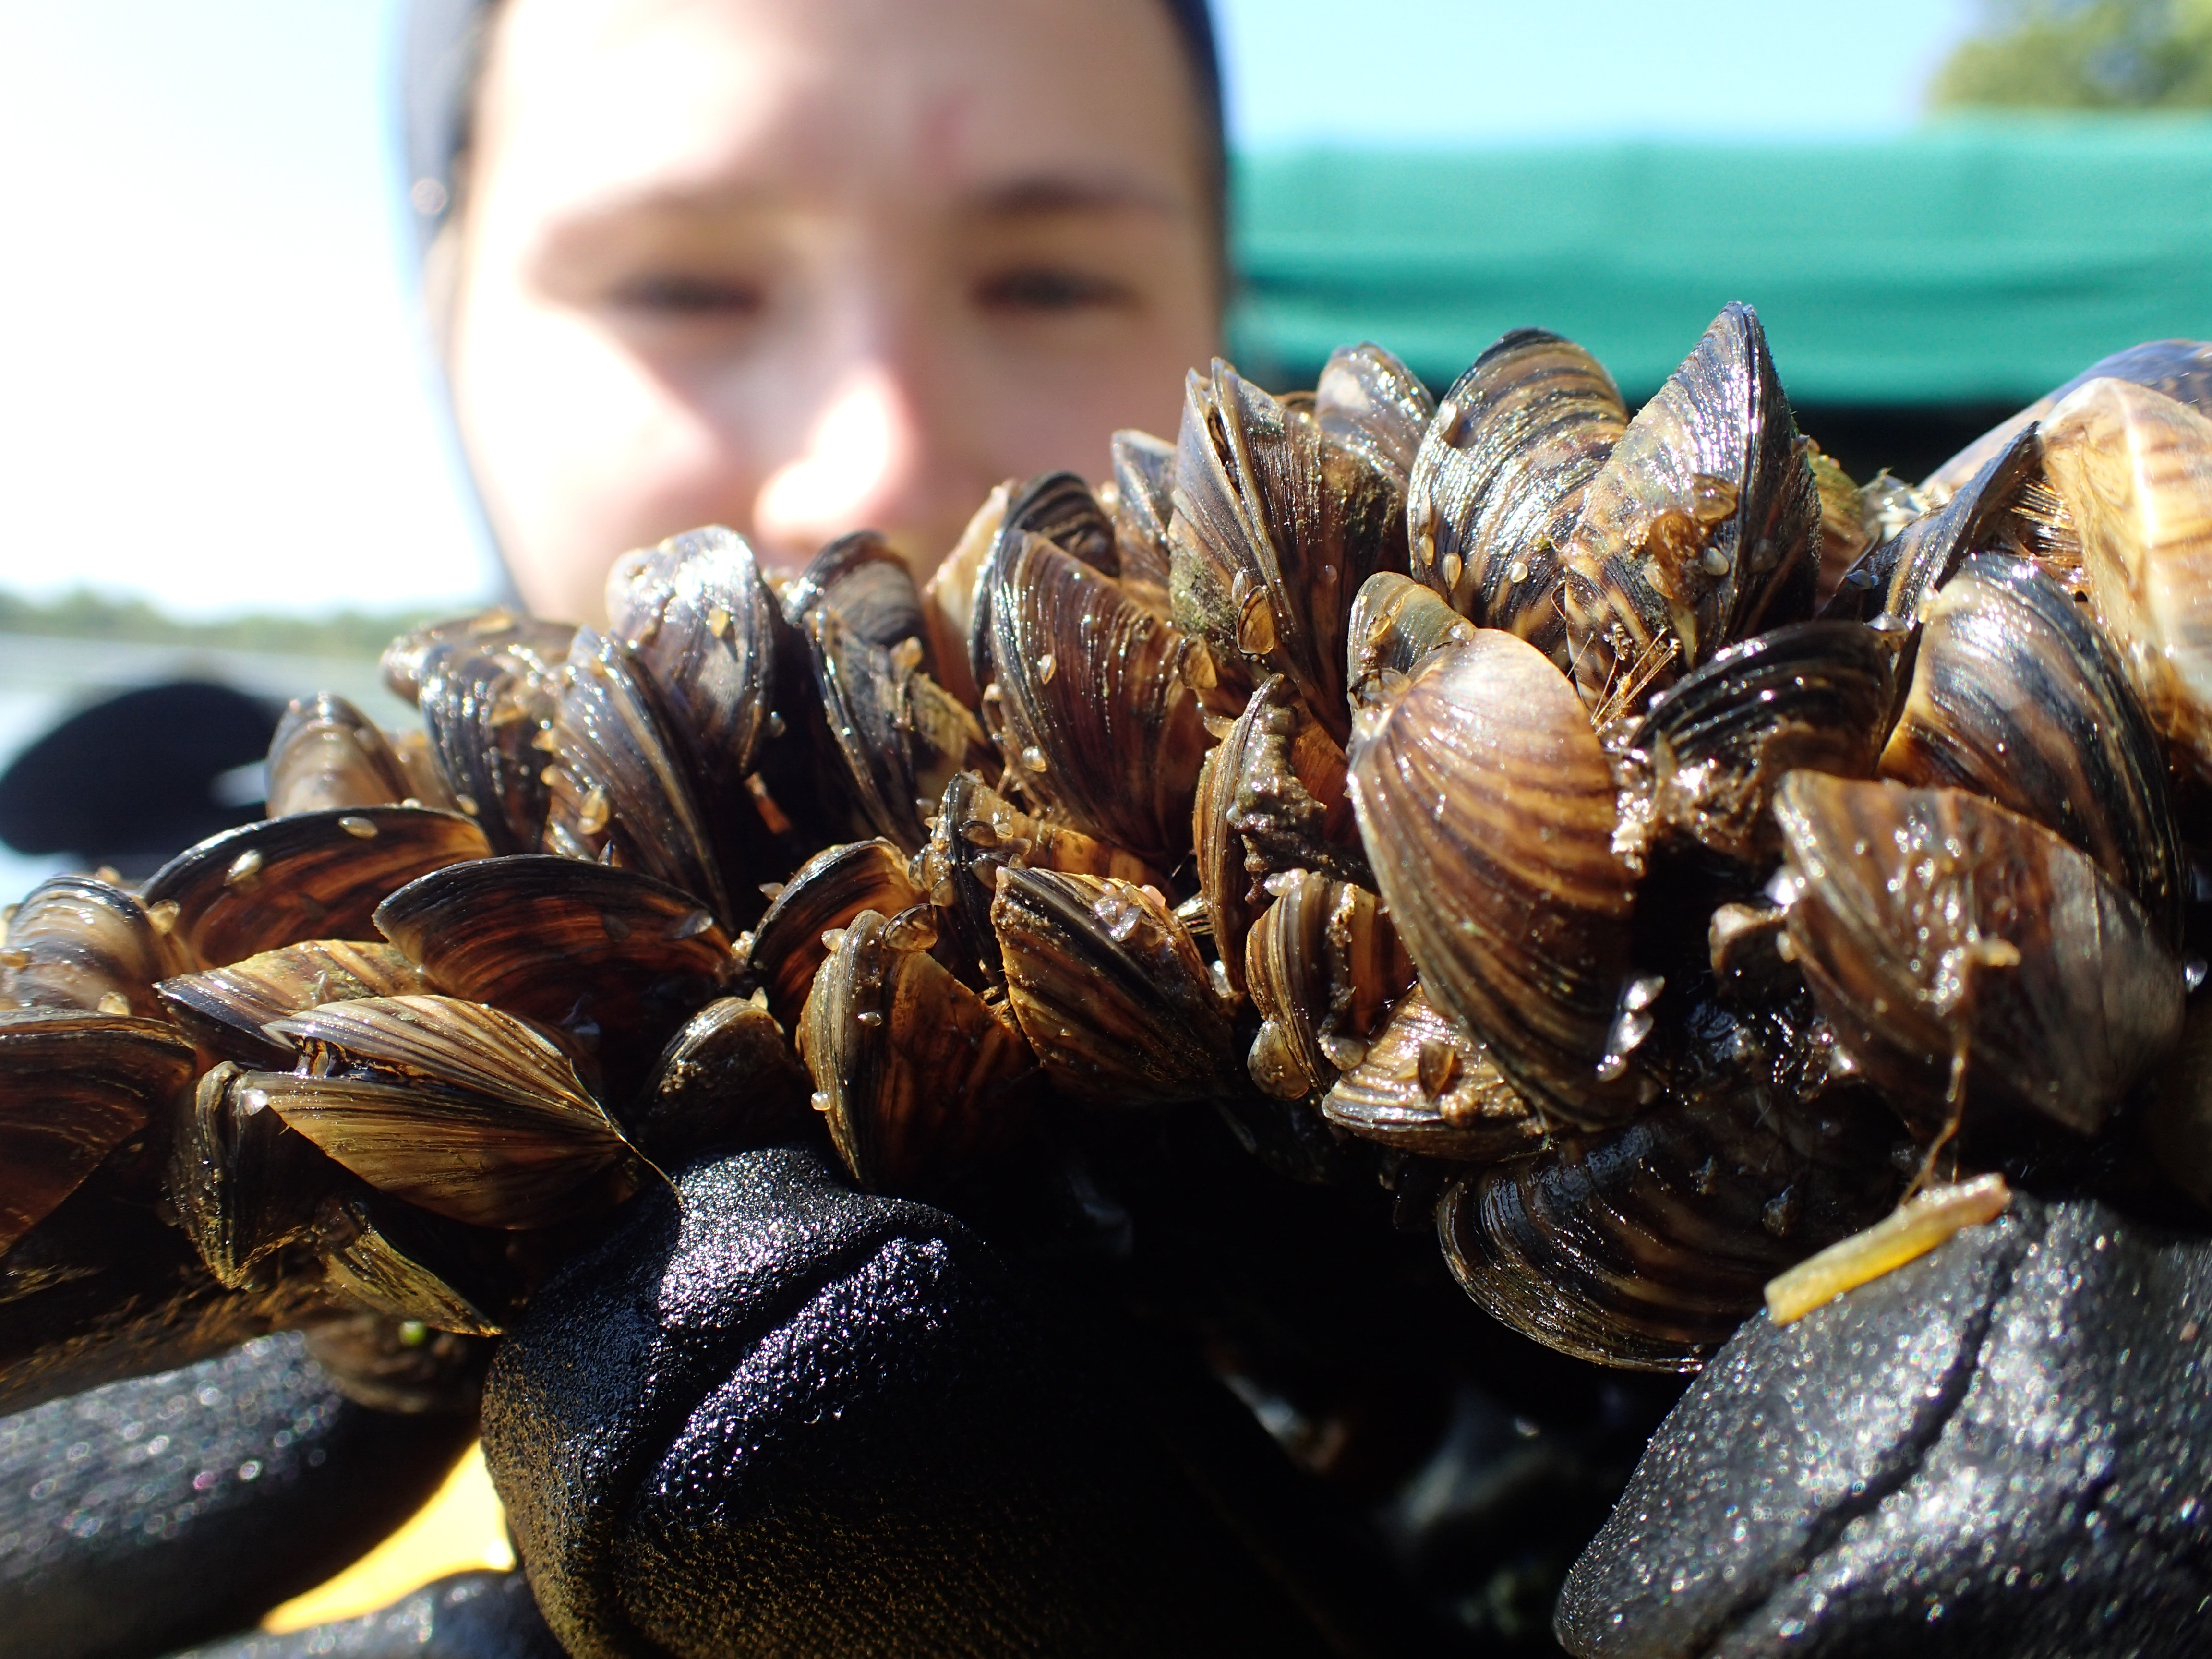 A SCUBA diver holding adult zebra mussels, which are covered by juveniles.